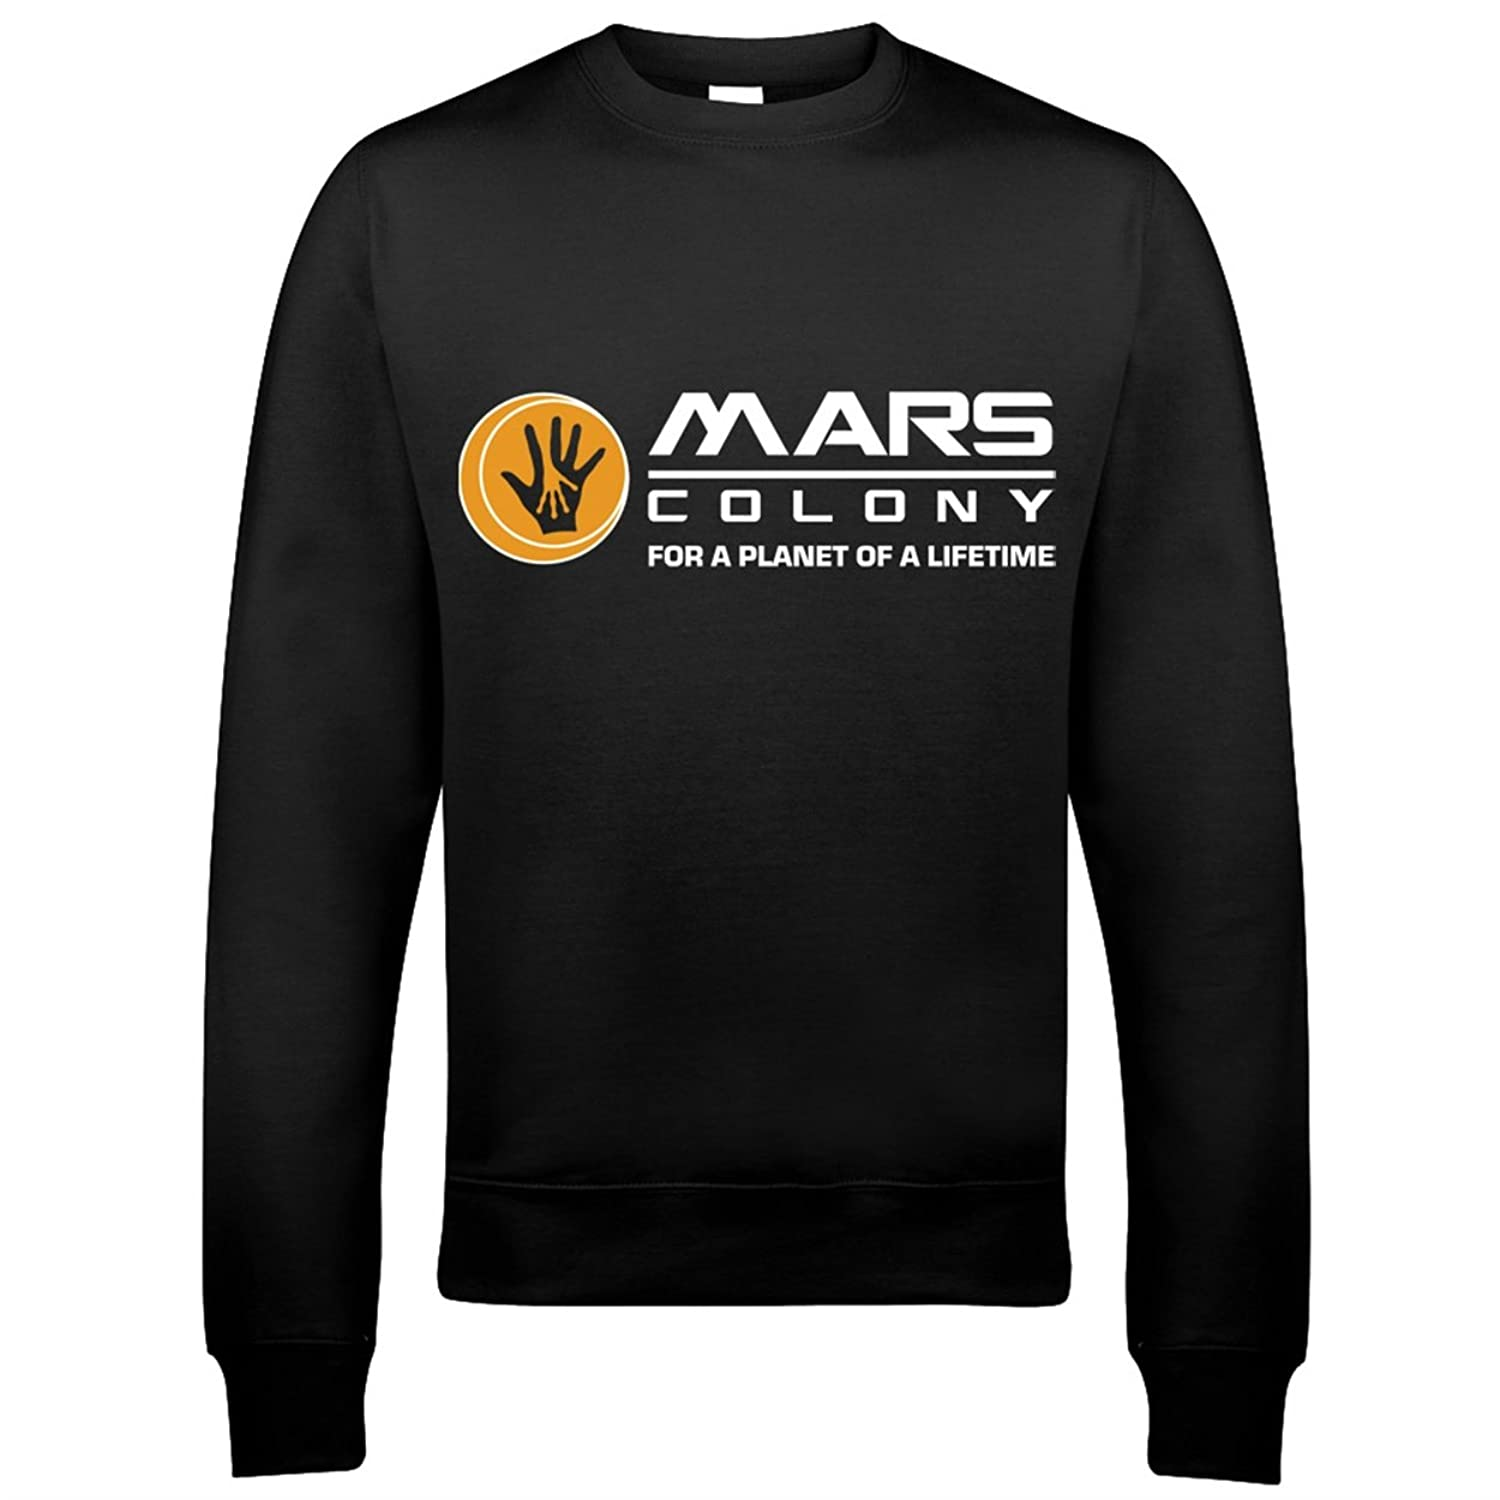 9179 Mars Colony Mens Sweatshirt Total Recall Federal Colonies Rekall Memory Moon Sarang